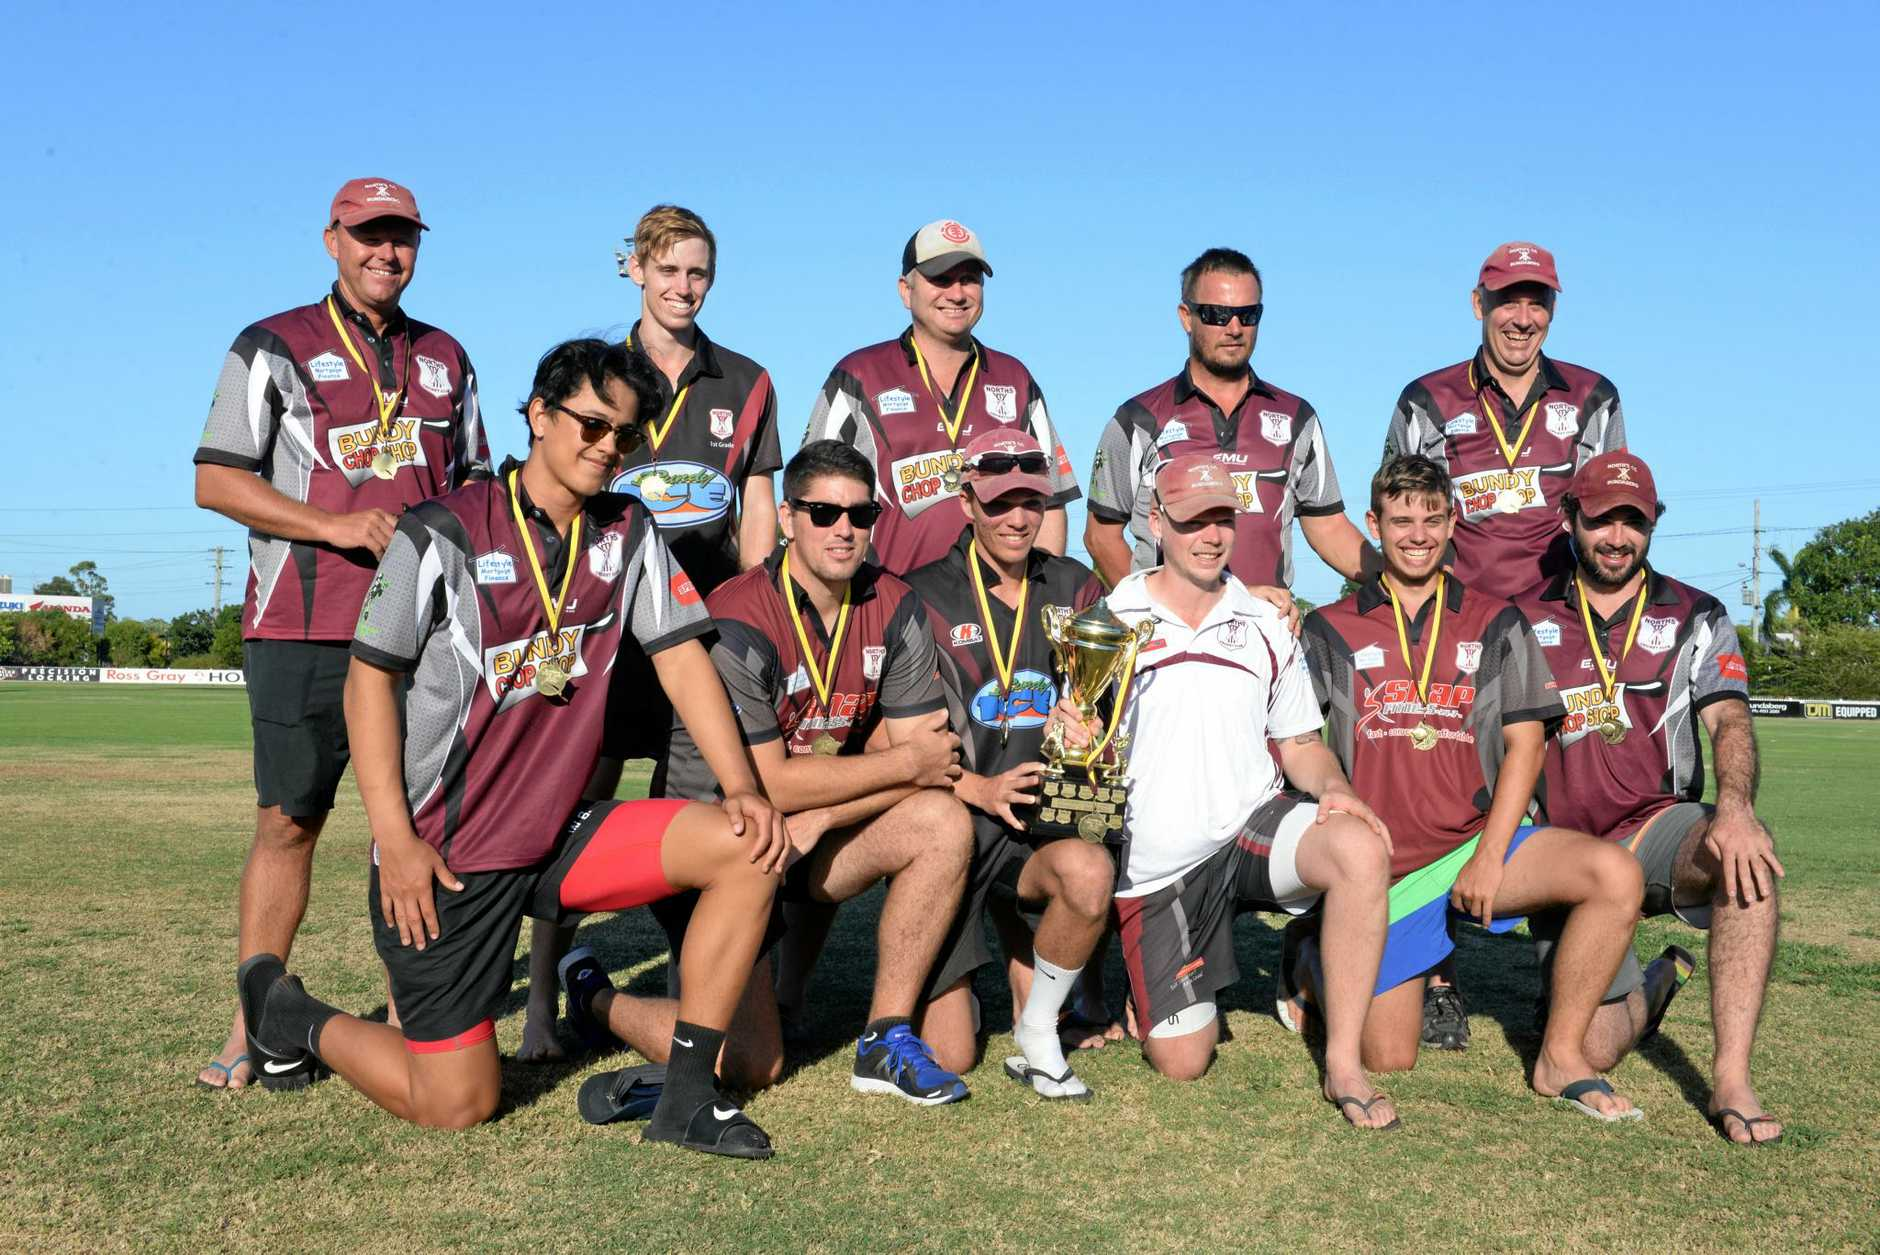 WINNERS: The victorious Norths team in Division 1 after they defeated The Waves in the grand final